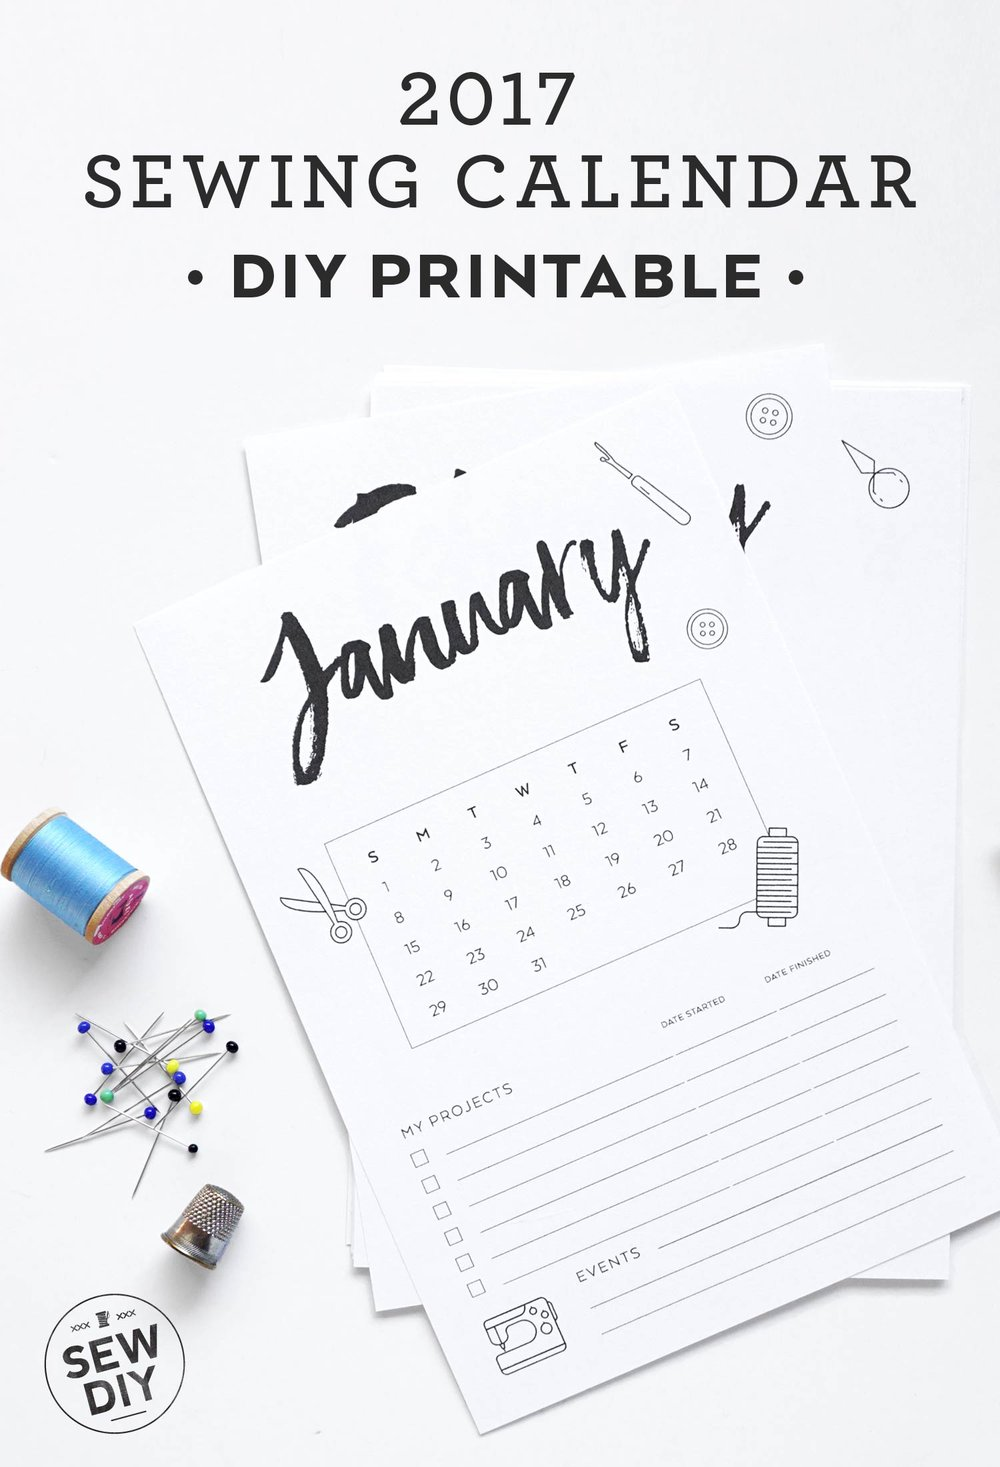 Free DIY Printable 2017 Sewing Calendar | Sew DIY